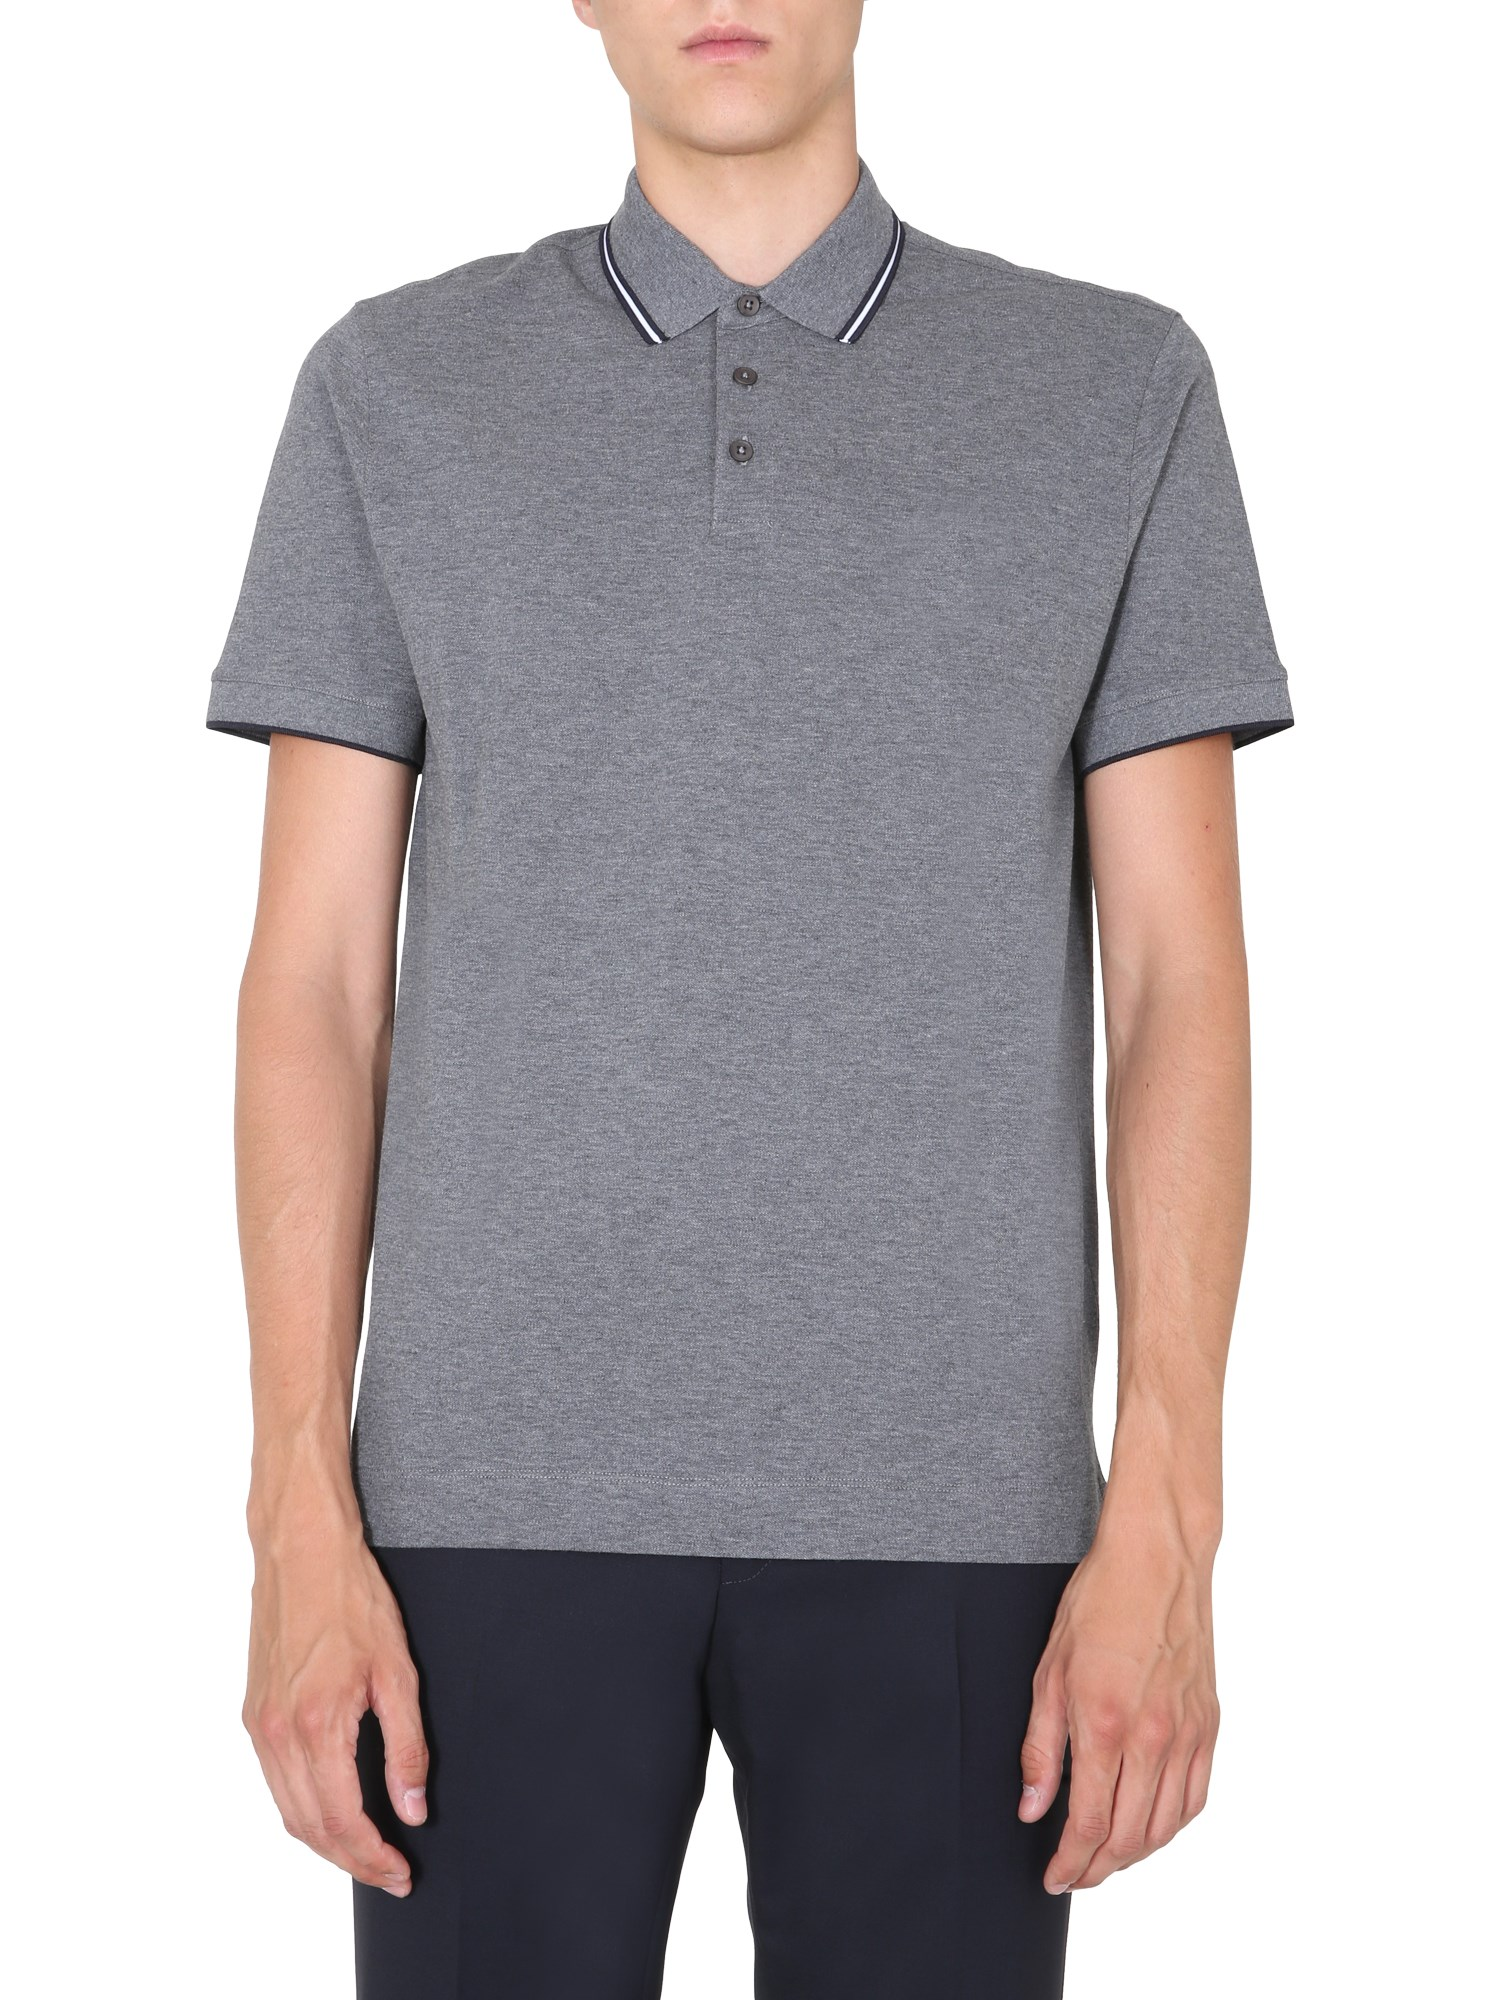 Z Zegna POLO WITH LOGO